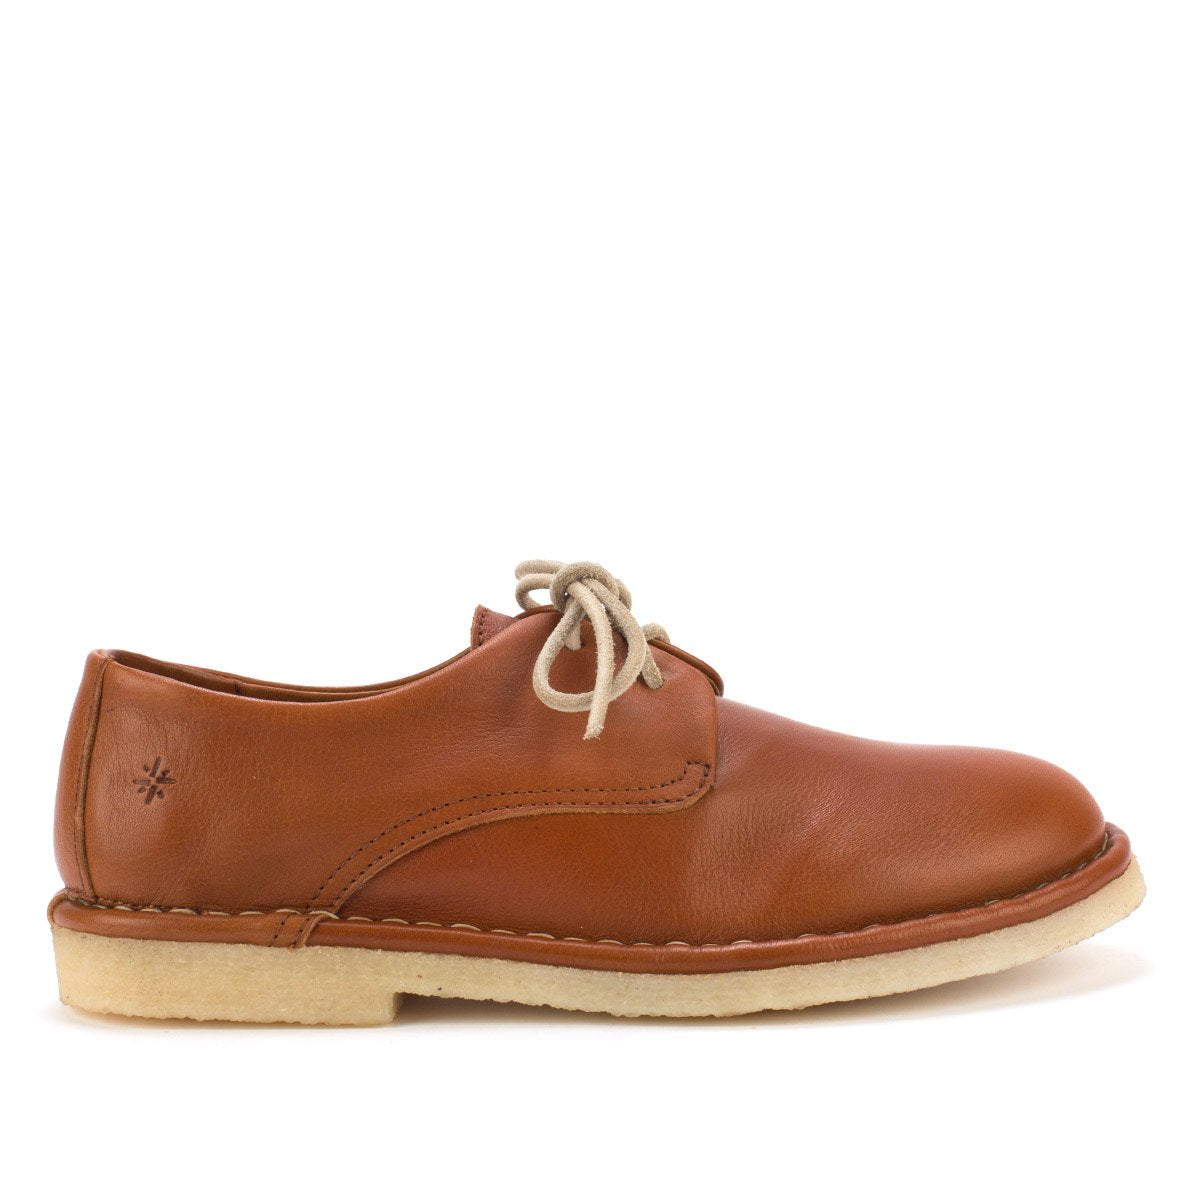 HAND 11 DERBY CREPE – Tan